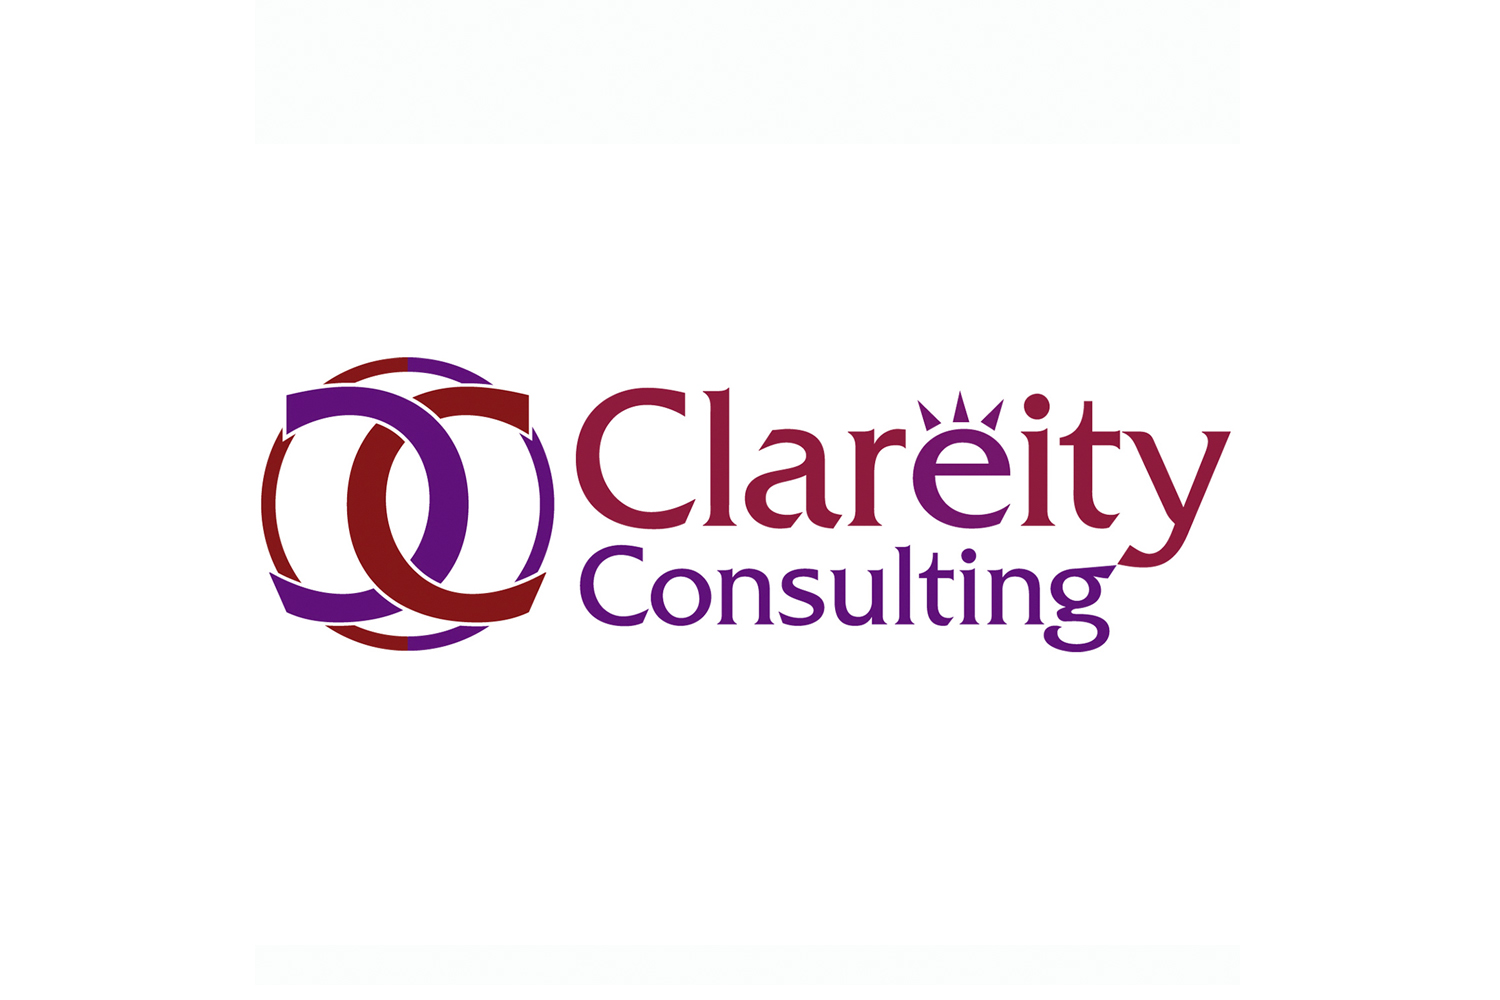 Logo design sample for Clareity Consulting